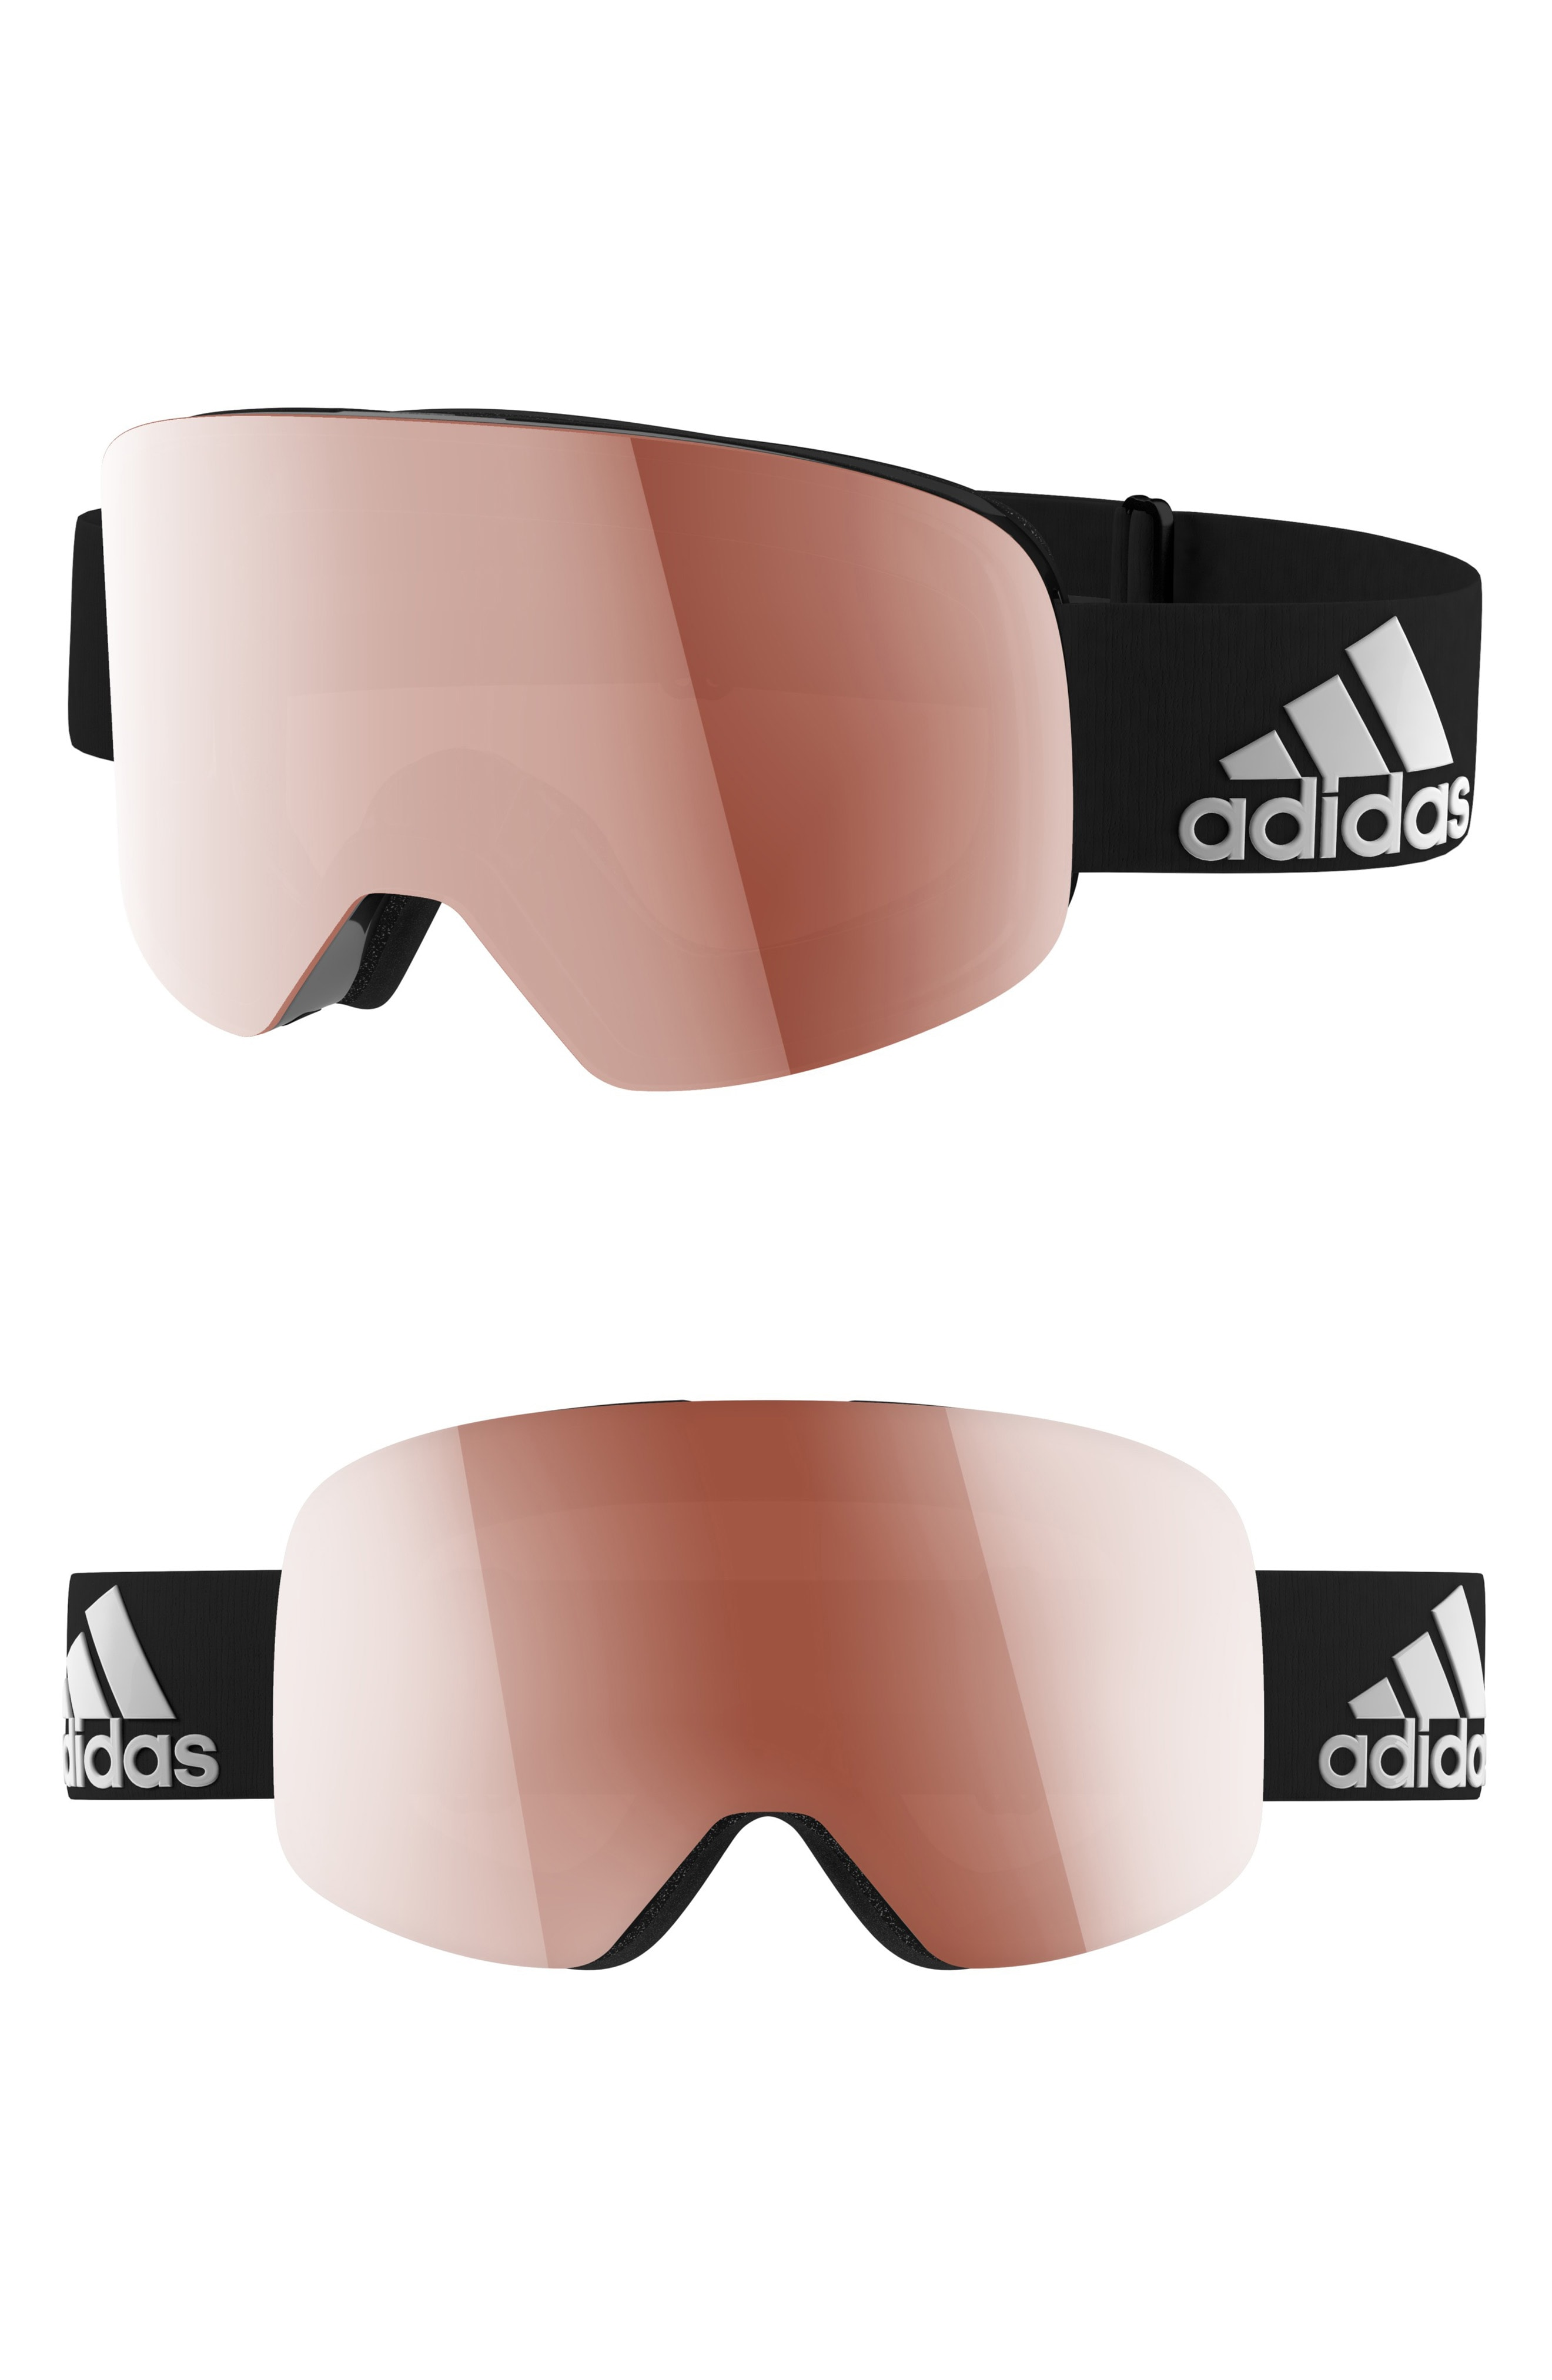 adidas Backland Spherical Snowsports Goggles